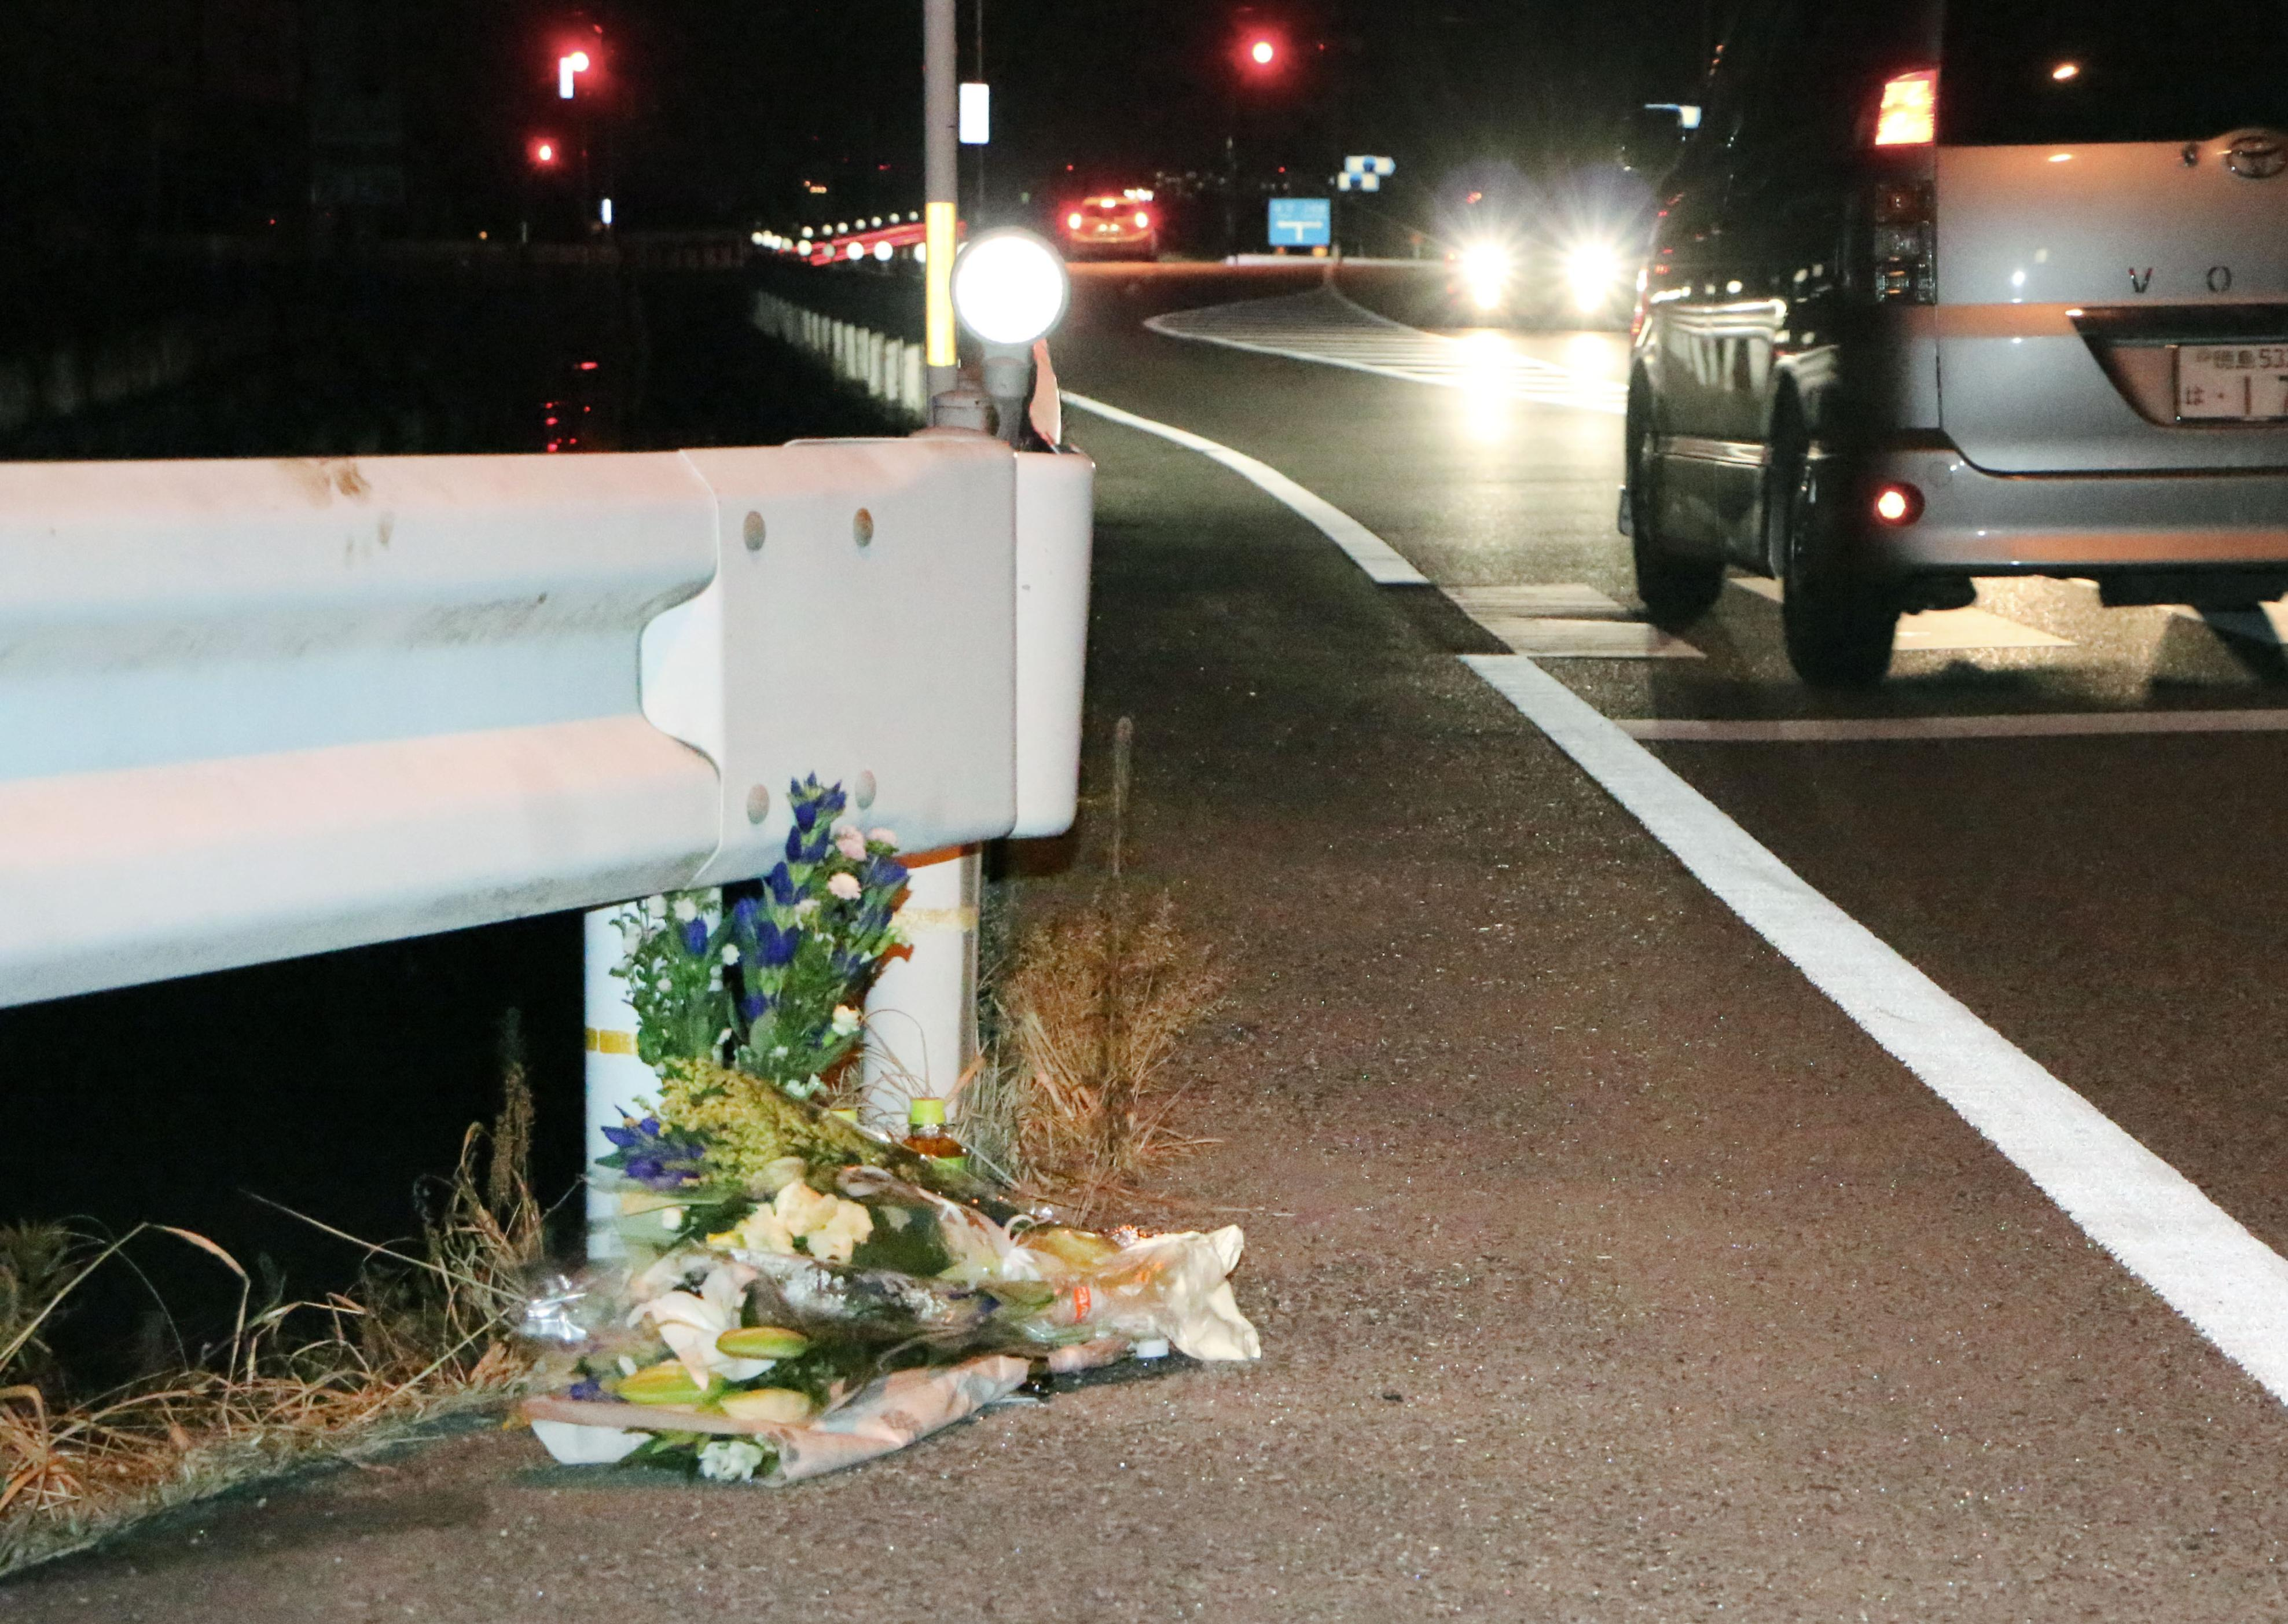 Flowers are laid in Tokushima, Japan, on Aug. 24, 2016, near the scene where a passer-by was killed in the first fatal accident in the country linked to a person playing the popular augmented-reality game  Pokemon Go  while driving.